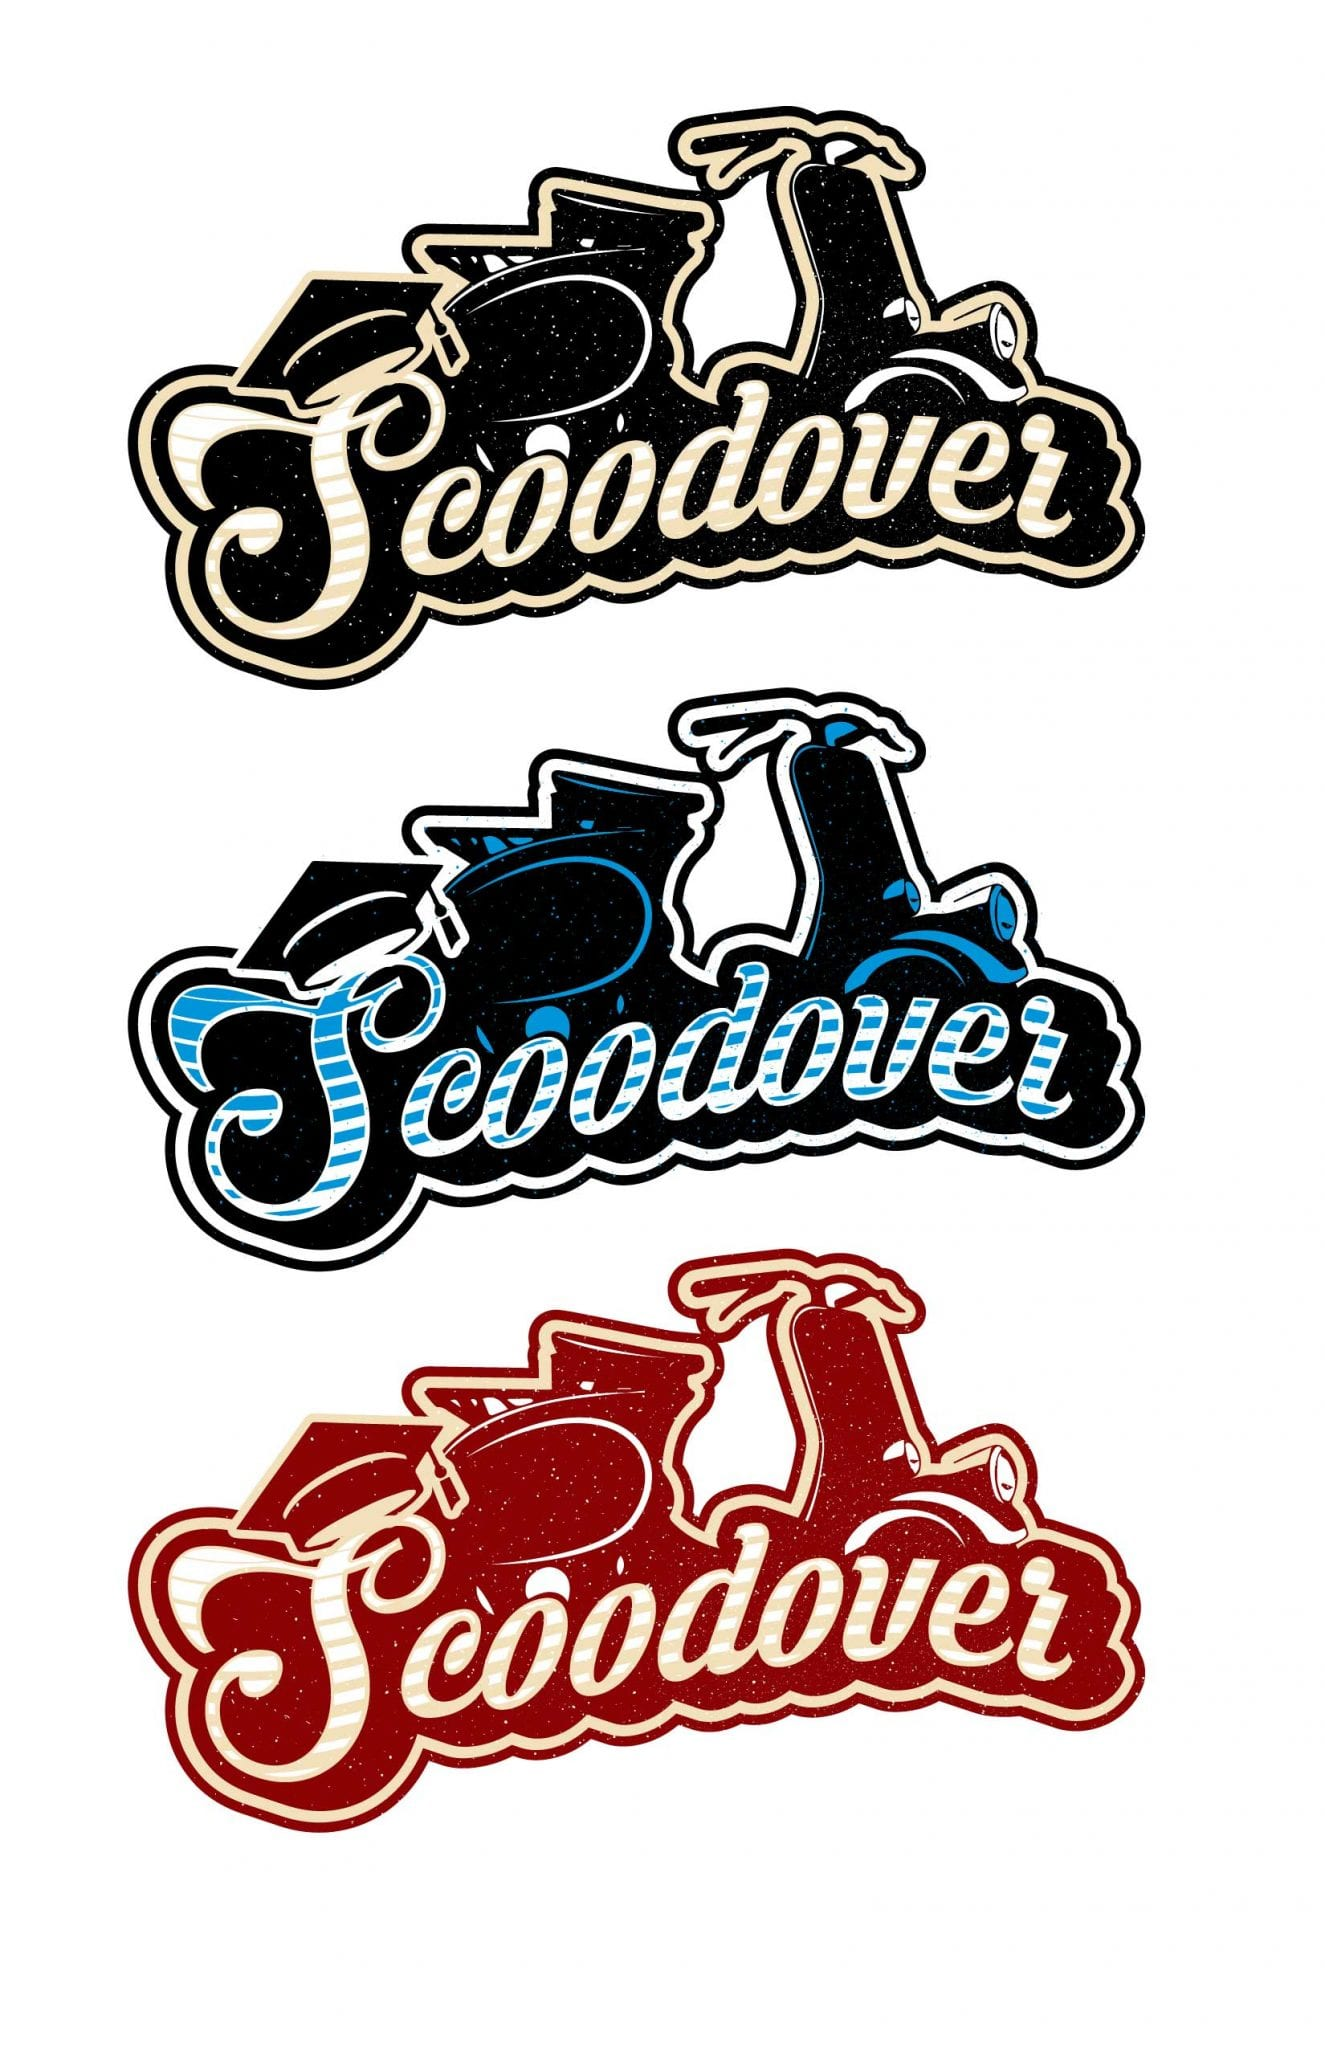 Scoodover cool logo design